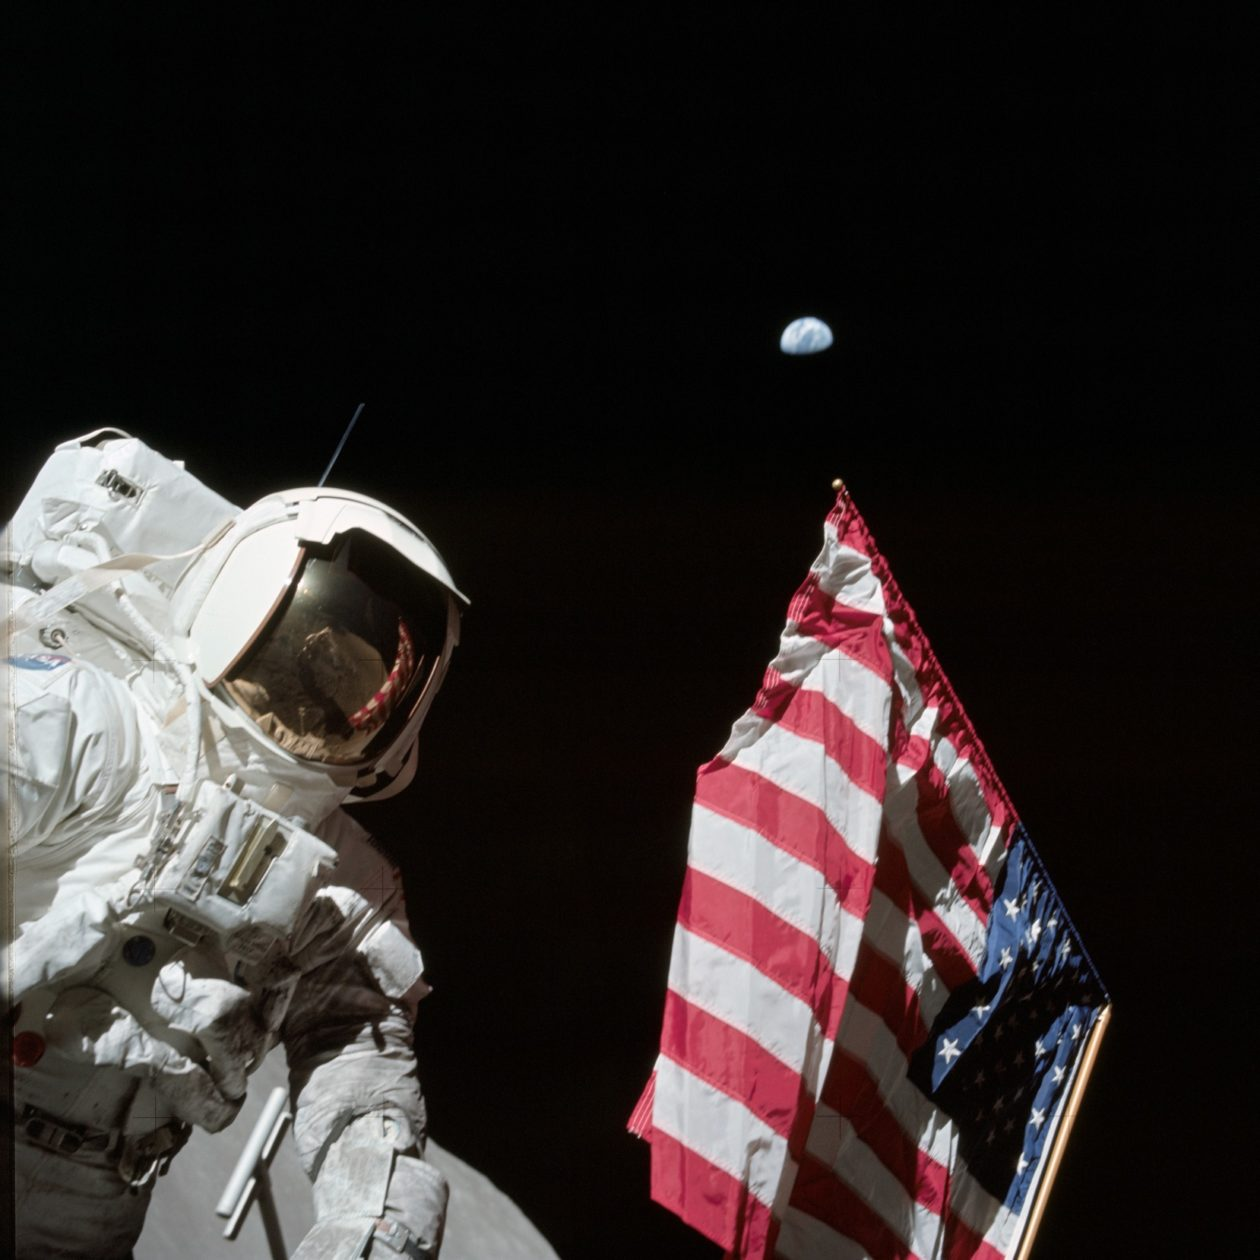 50 years after Apollo moonshots, will rivalry with China spark a new space race?